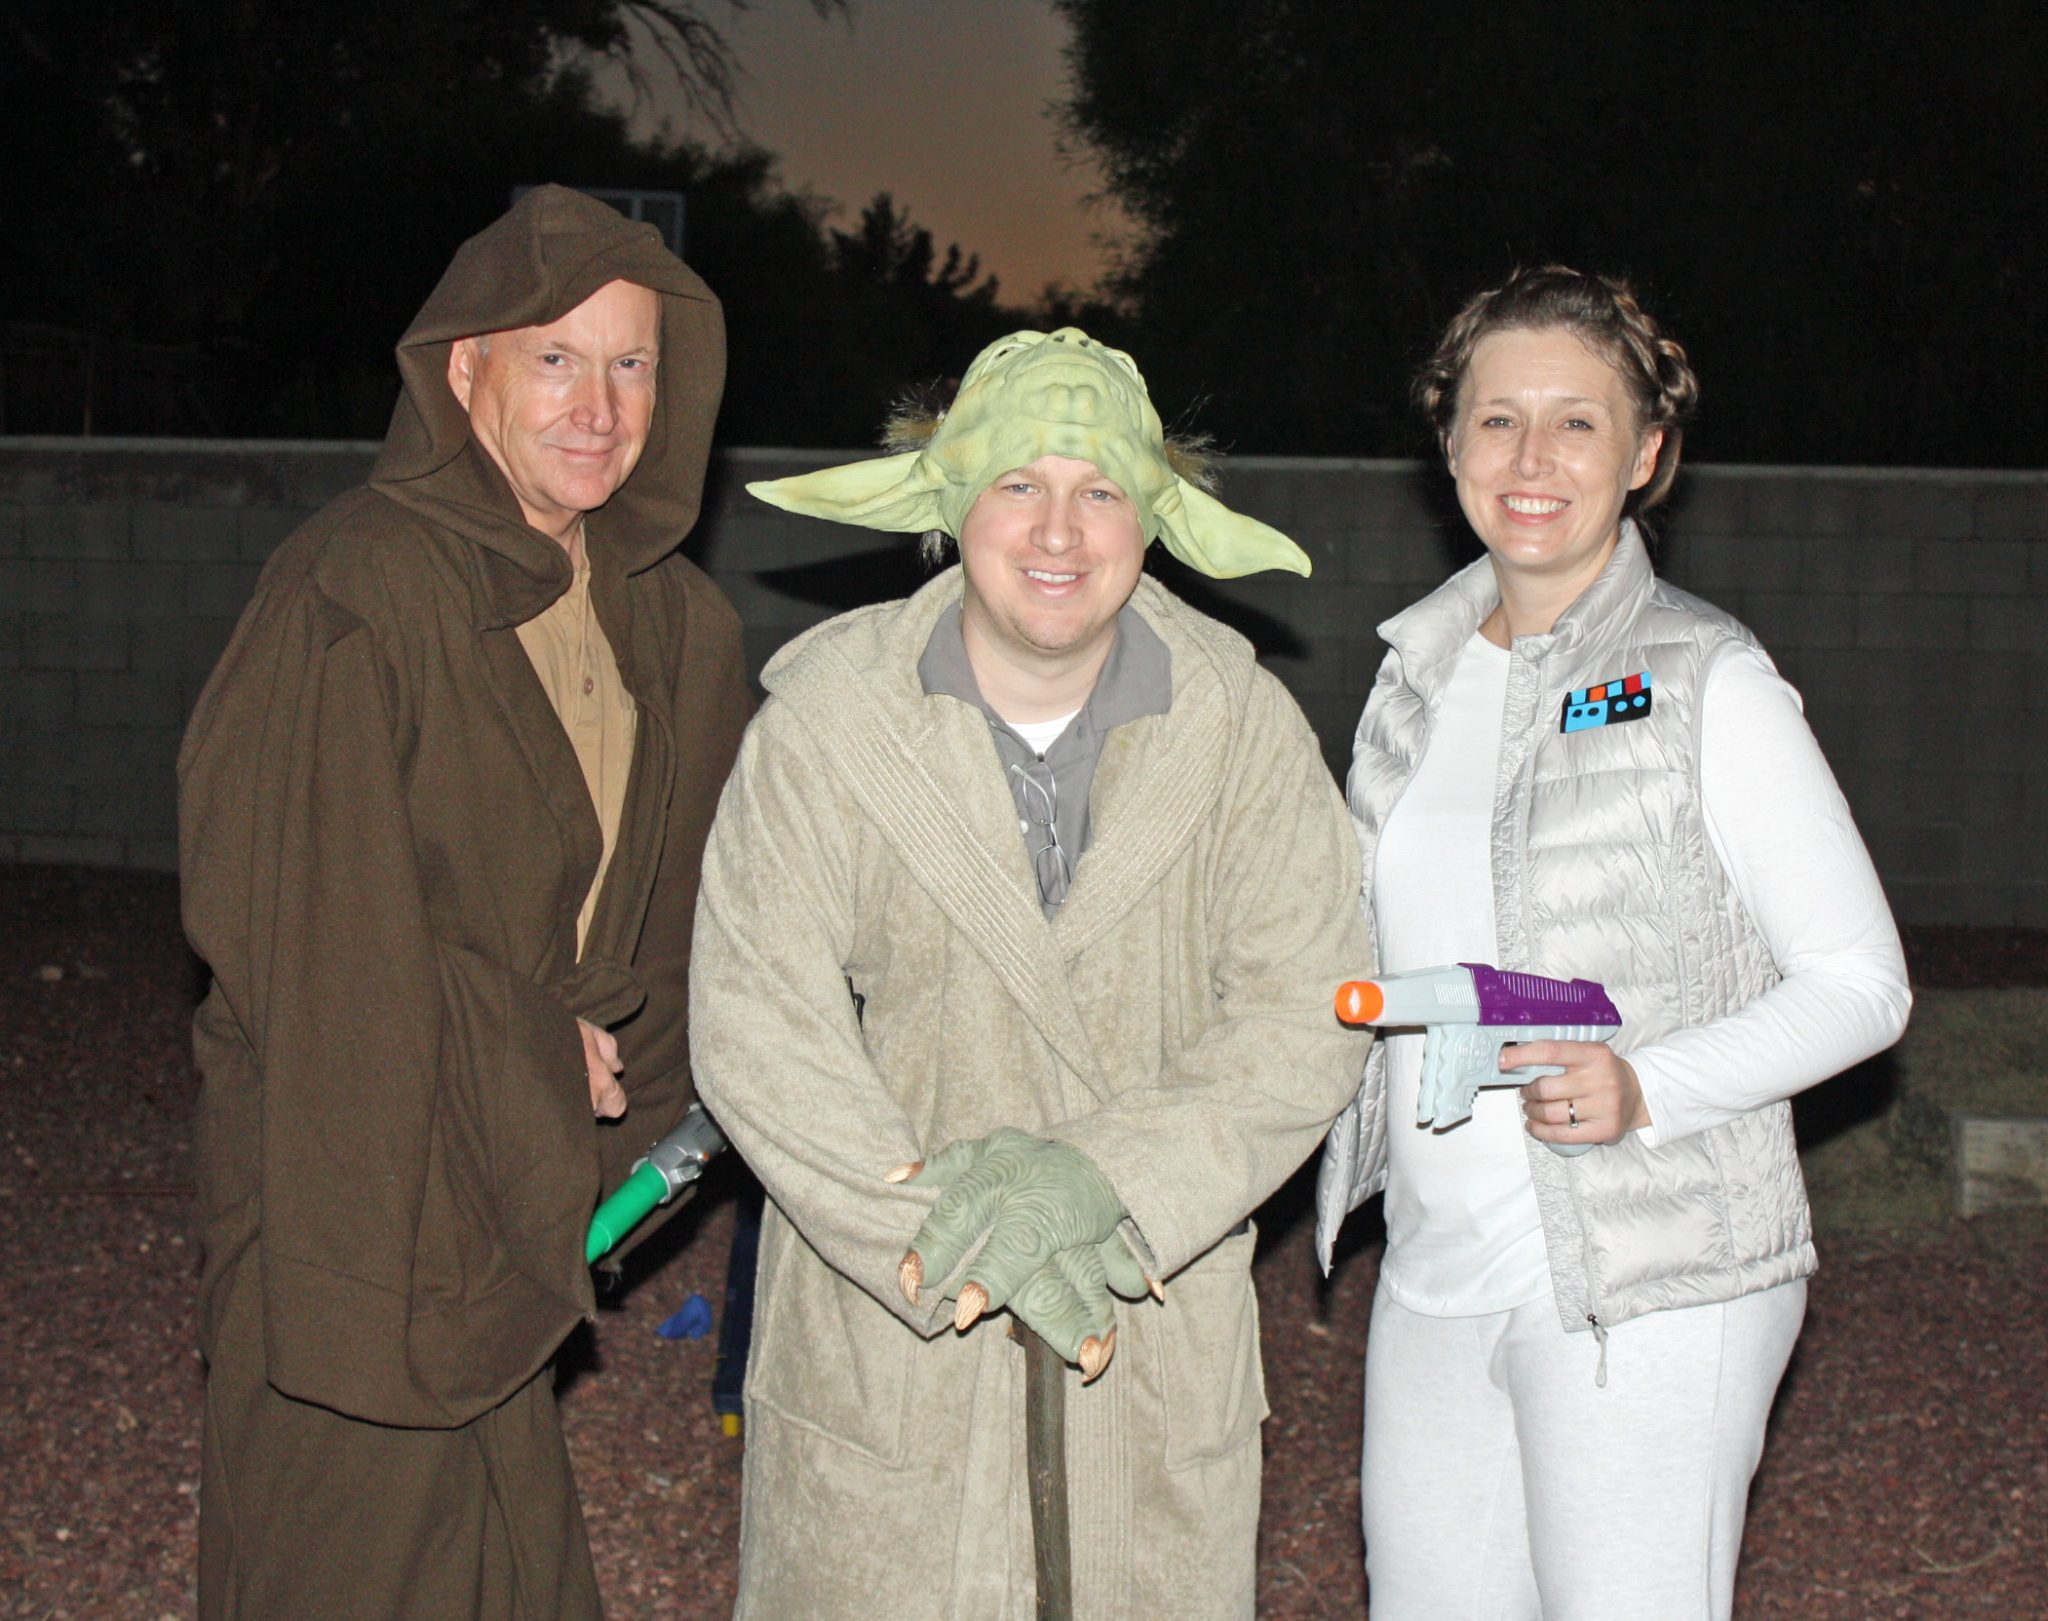 Jedi leia Yoda Star Wars Costumes